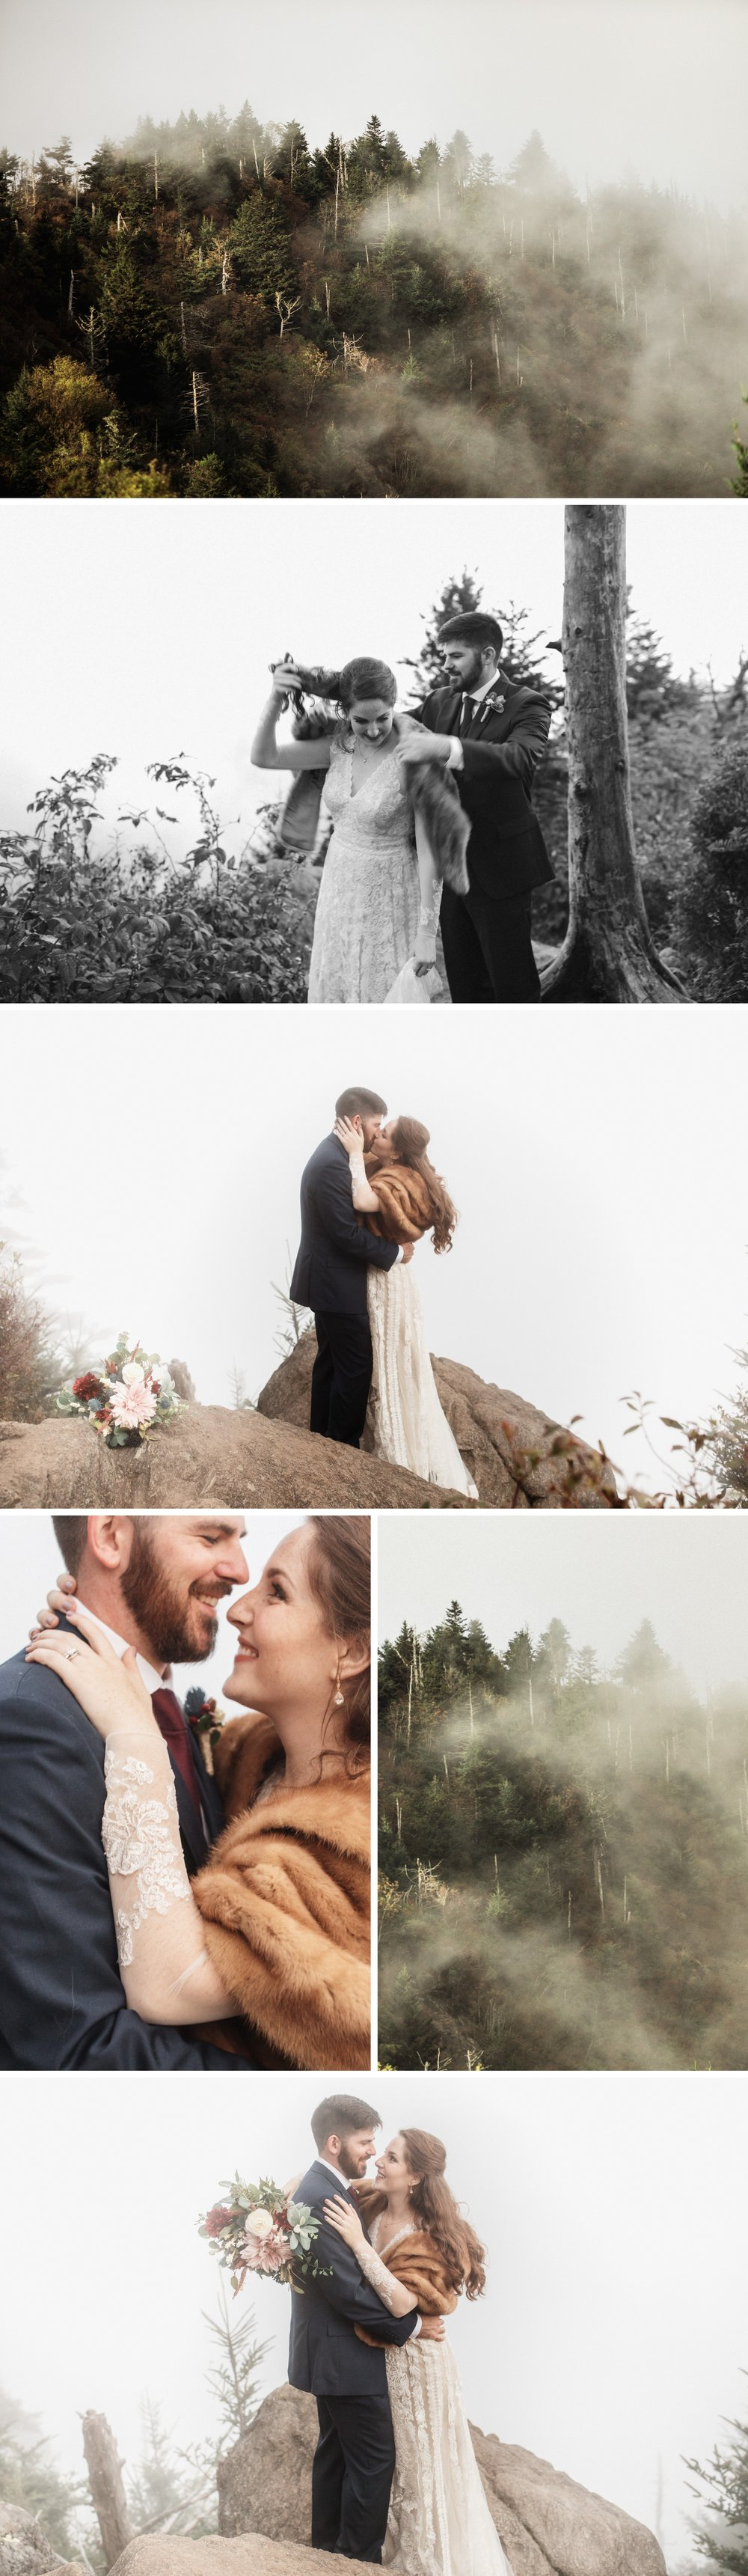 Great Smoky Mountain National Park Elopement- Cole + Rachel- Photographer Shaina DeCiryan-11.201811.jpg